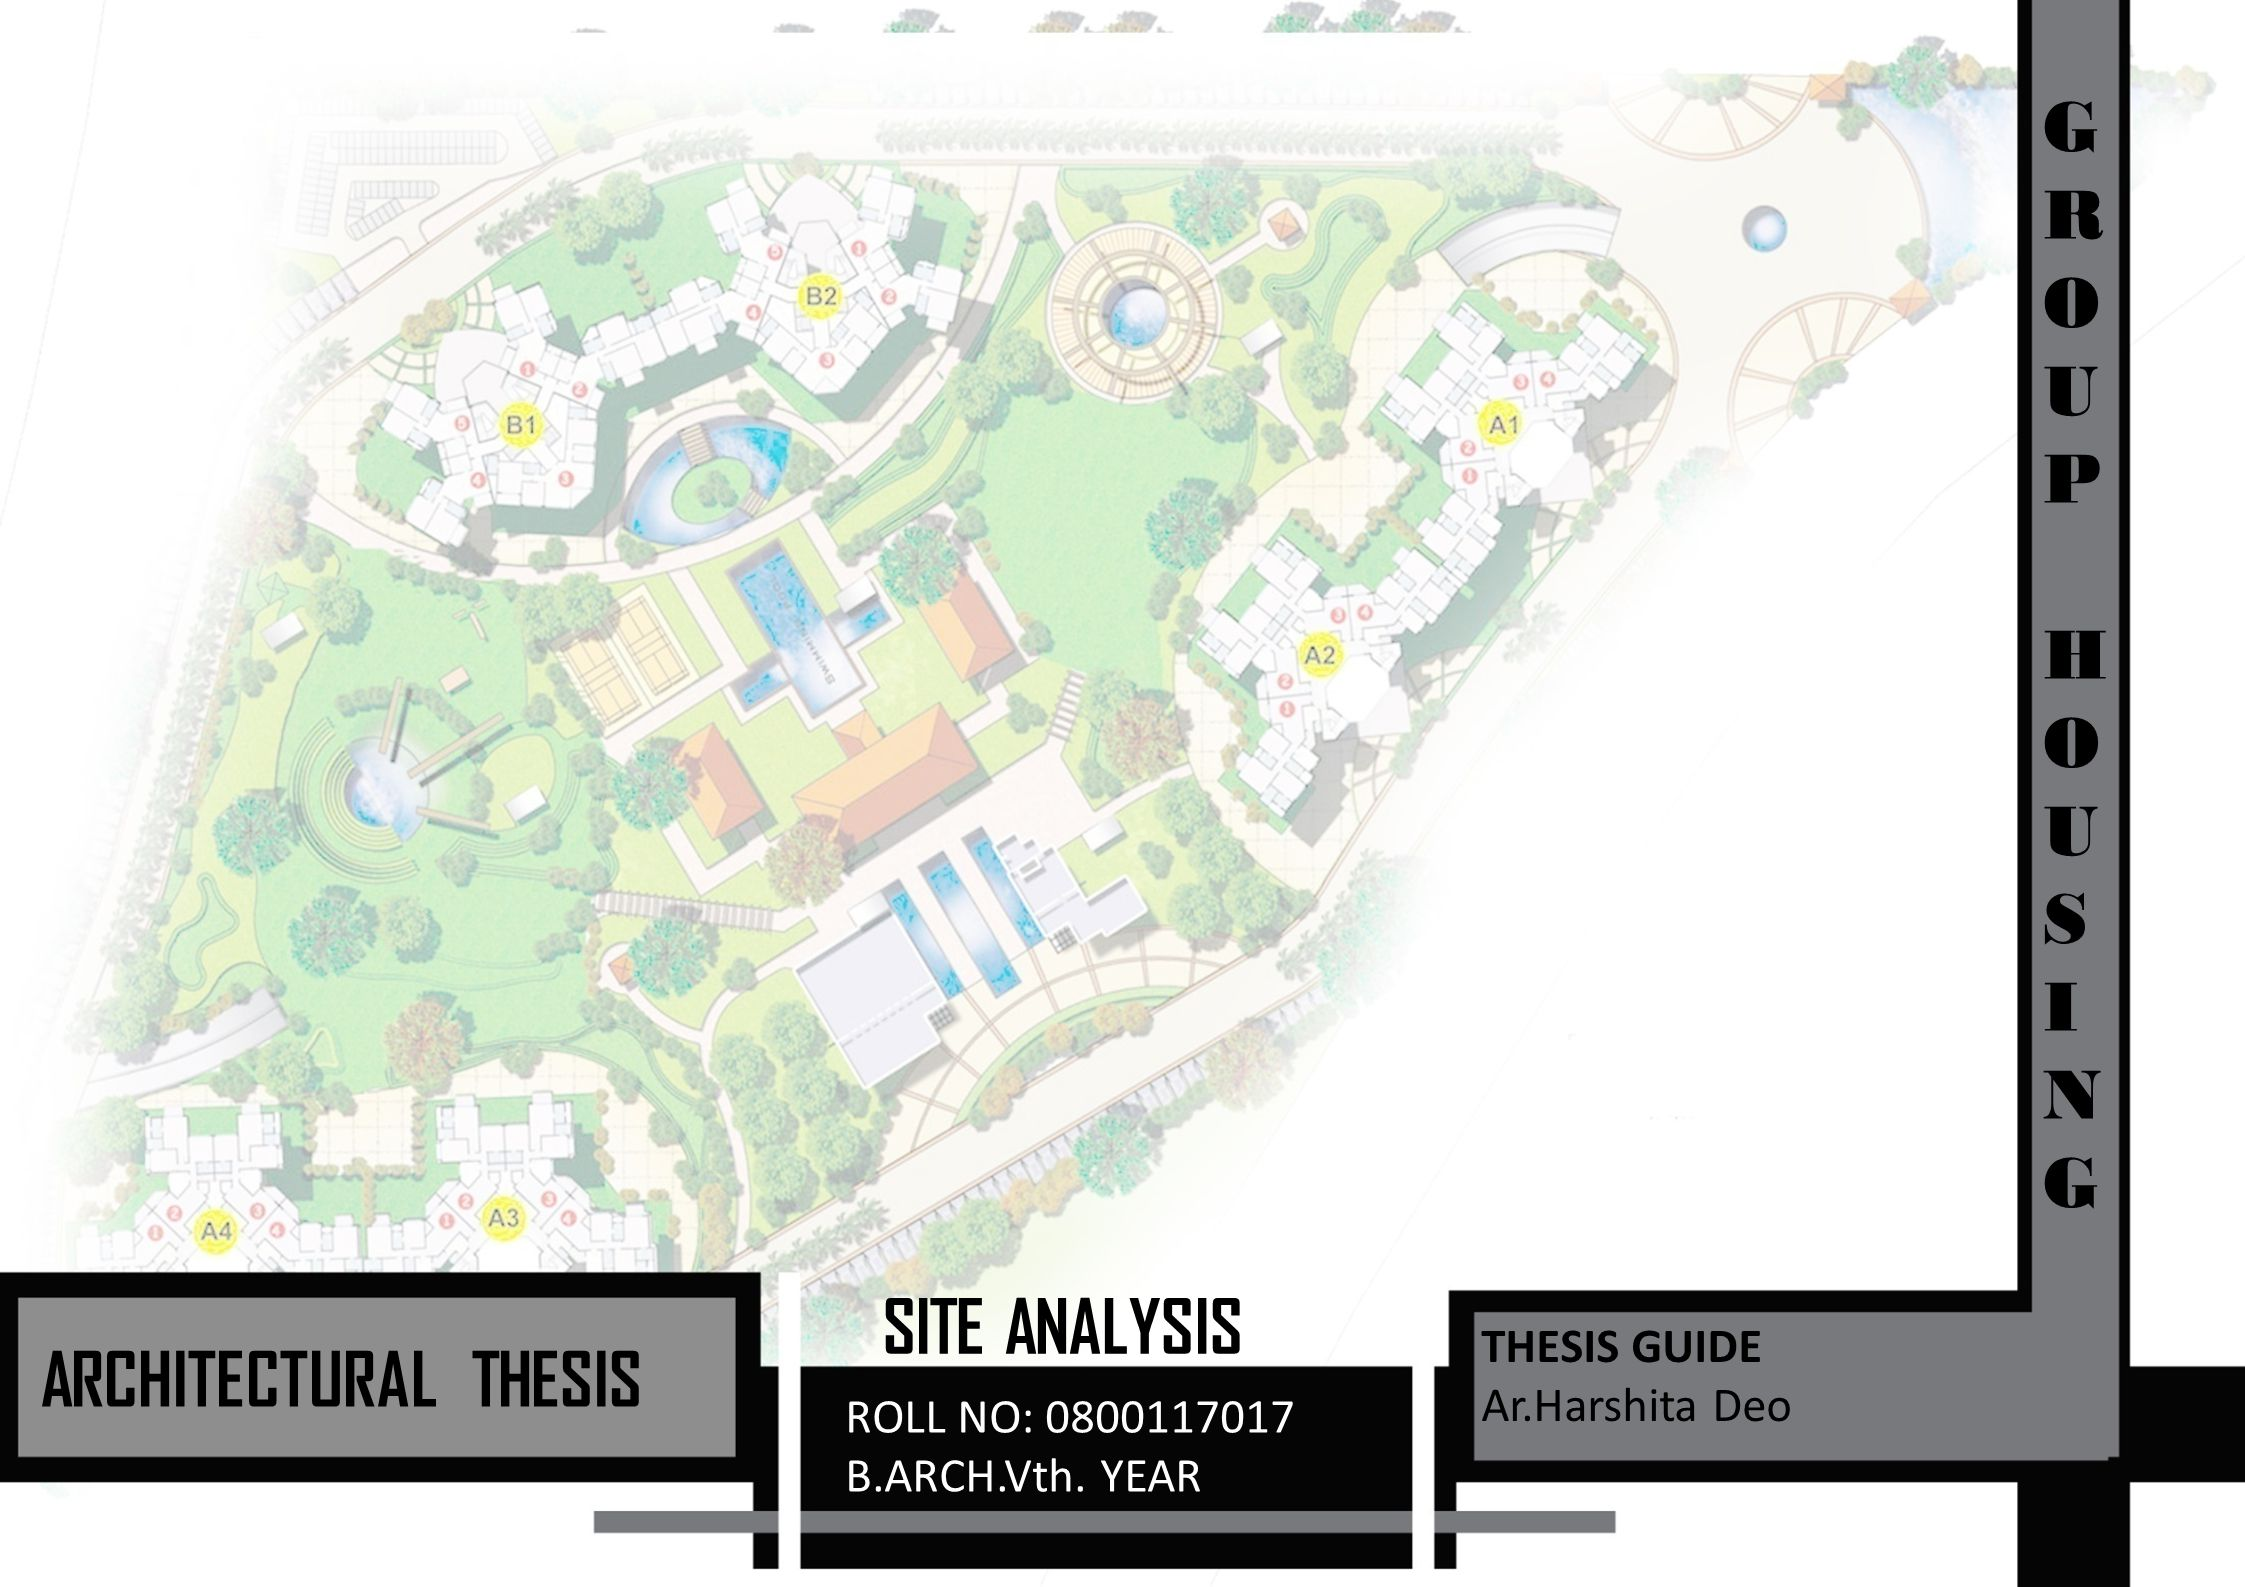 G R O U P H S I N SITE ANALYSIS ARCHITECTURAL THESIS - ppt